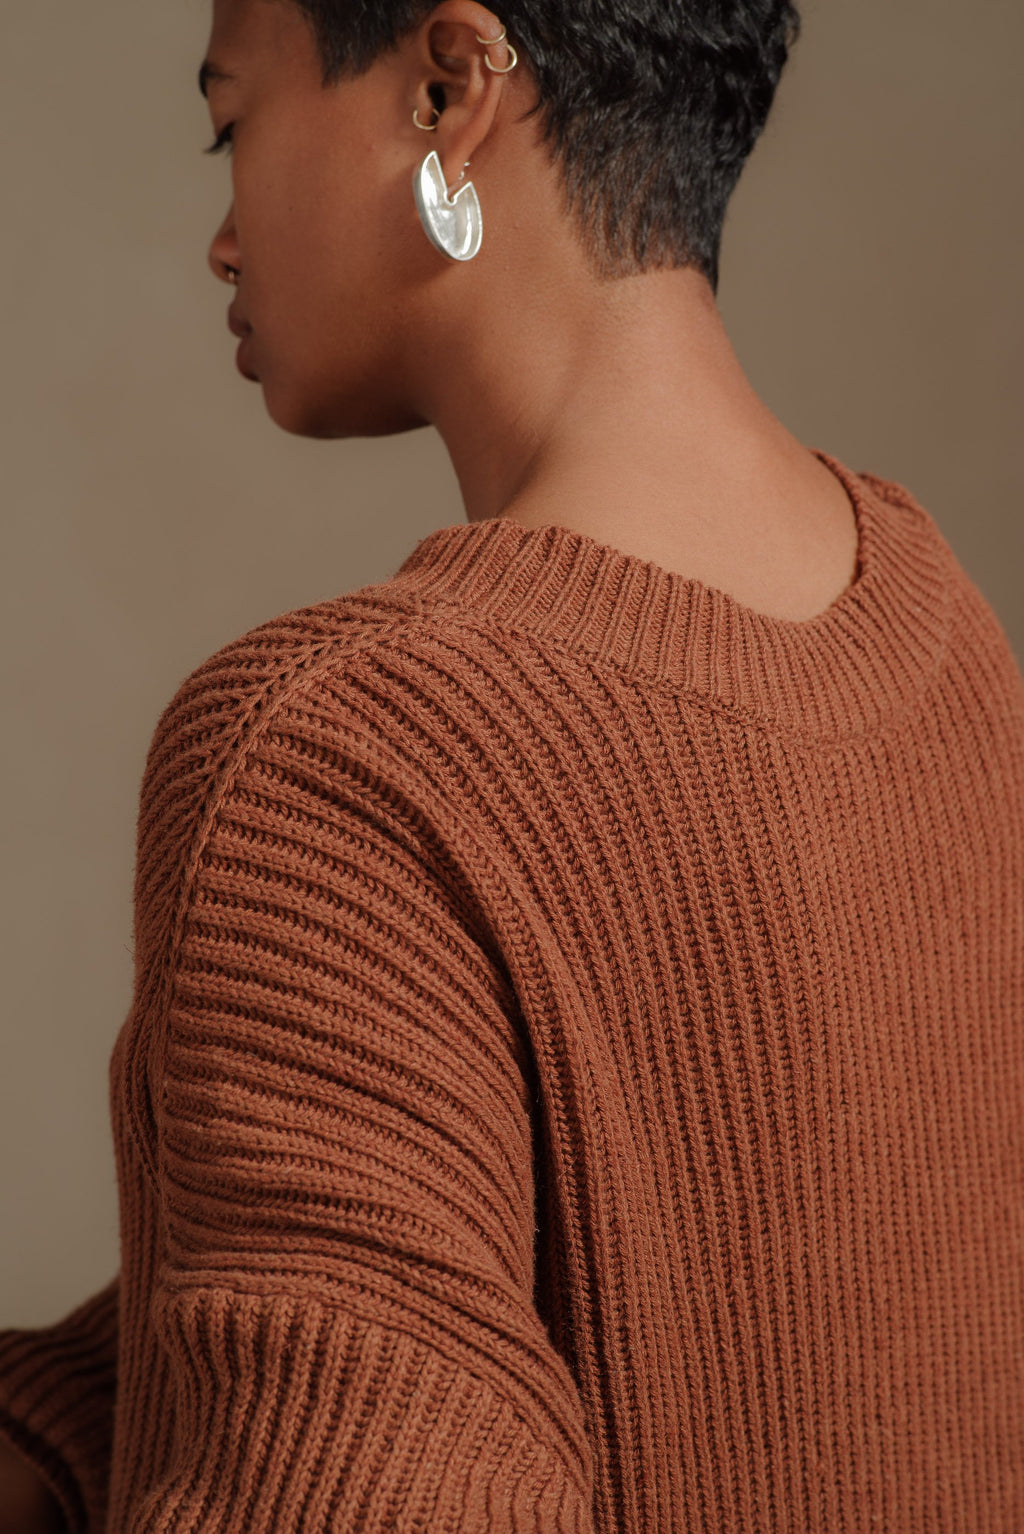 JAN-JAN-VAN-ESSCHE-RUST-WIDE-FIT-SWEATER#48